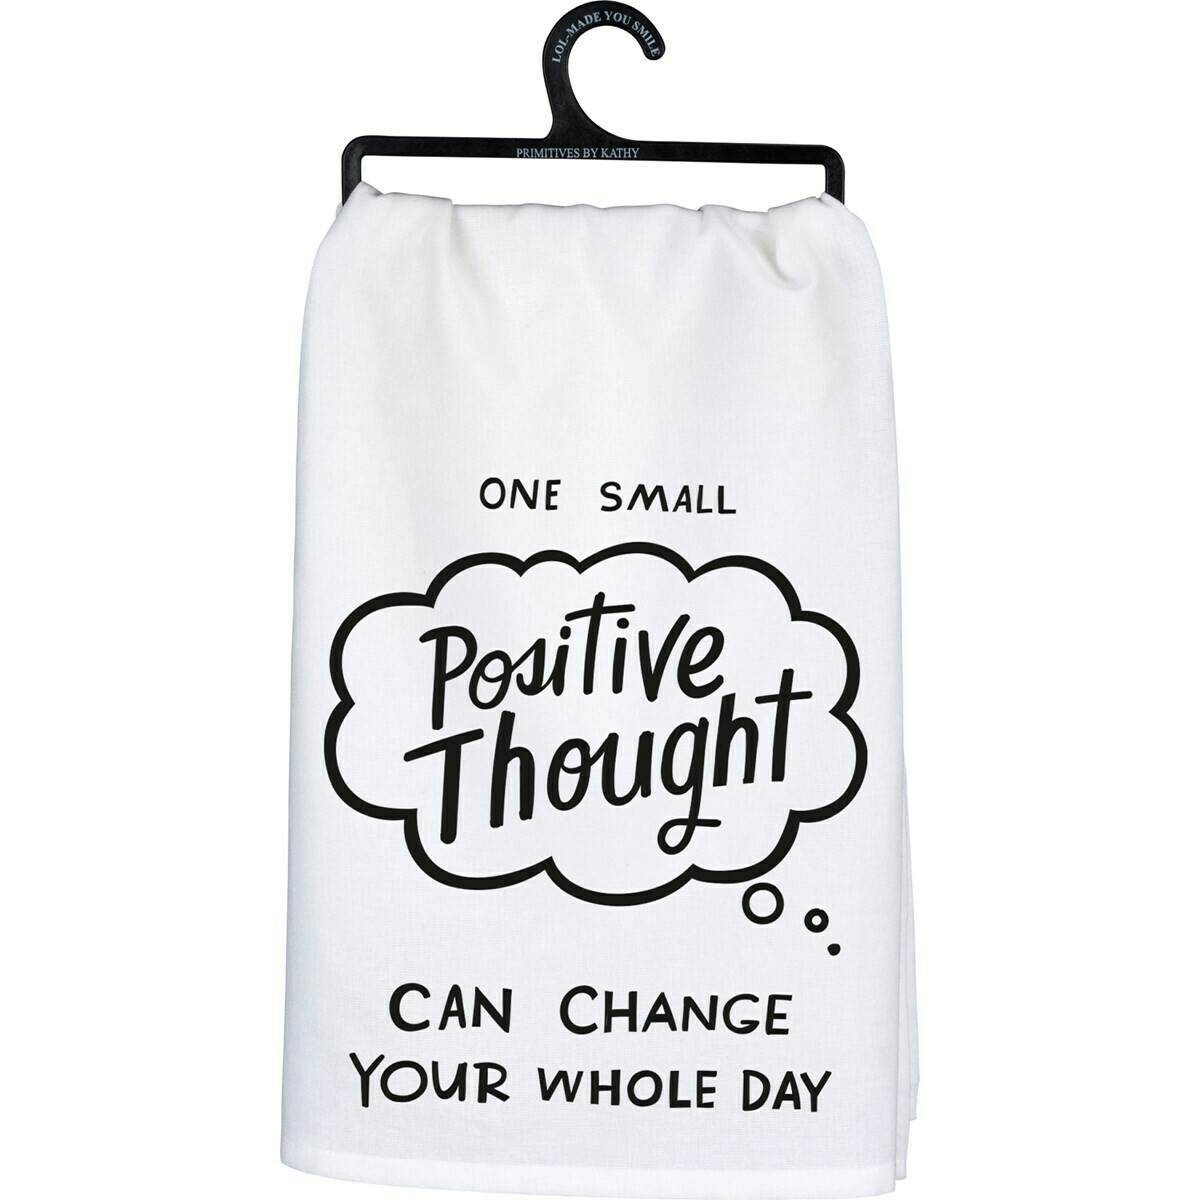 Positive Thought Towel